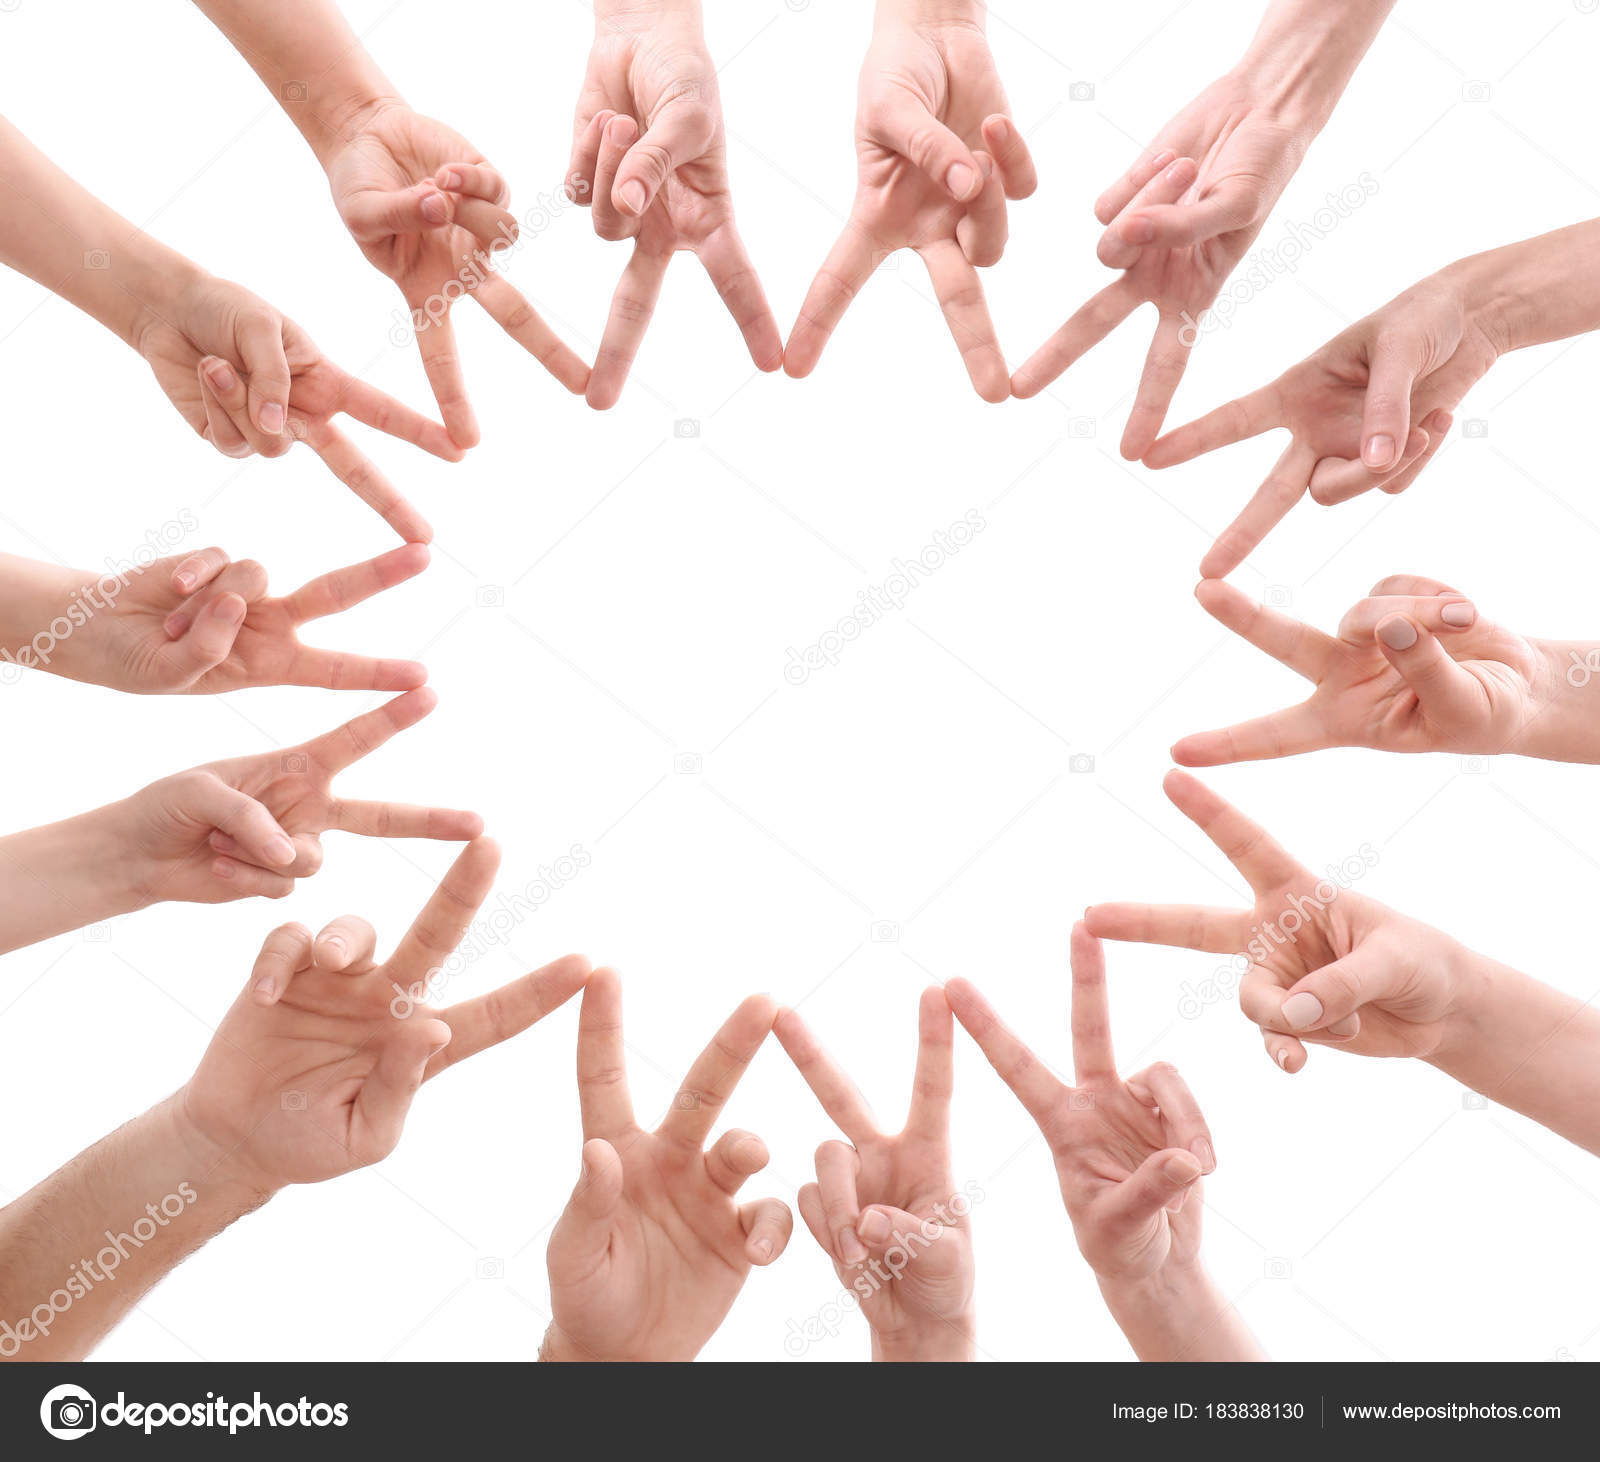 Young People Making Circle With Their Hands As Symbol Of Unity On White Background Stock Photo C Belchonock 183838130